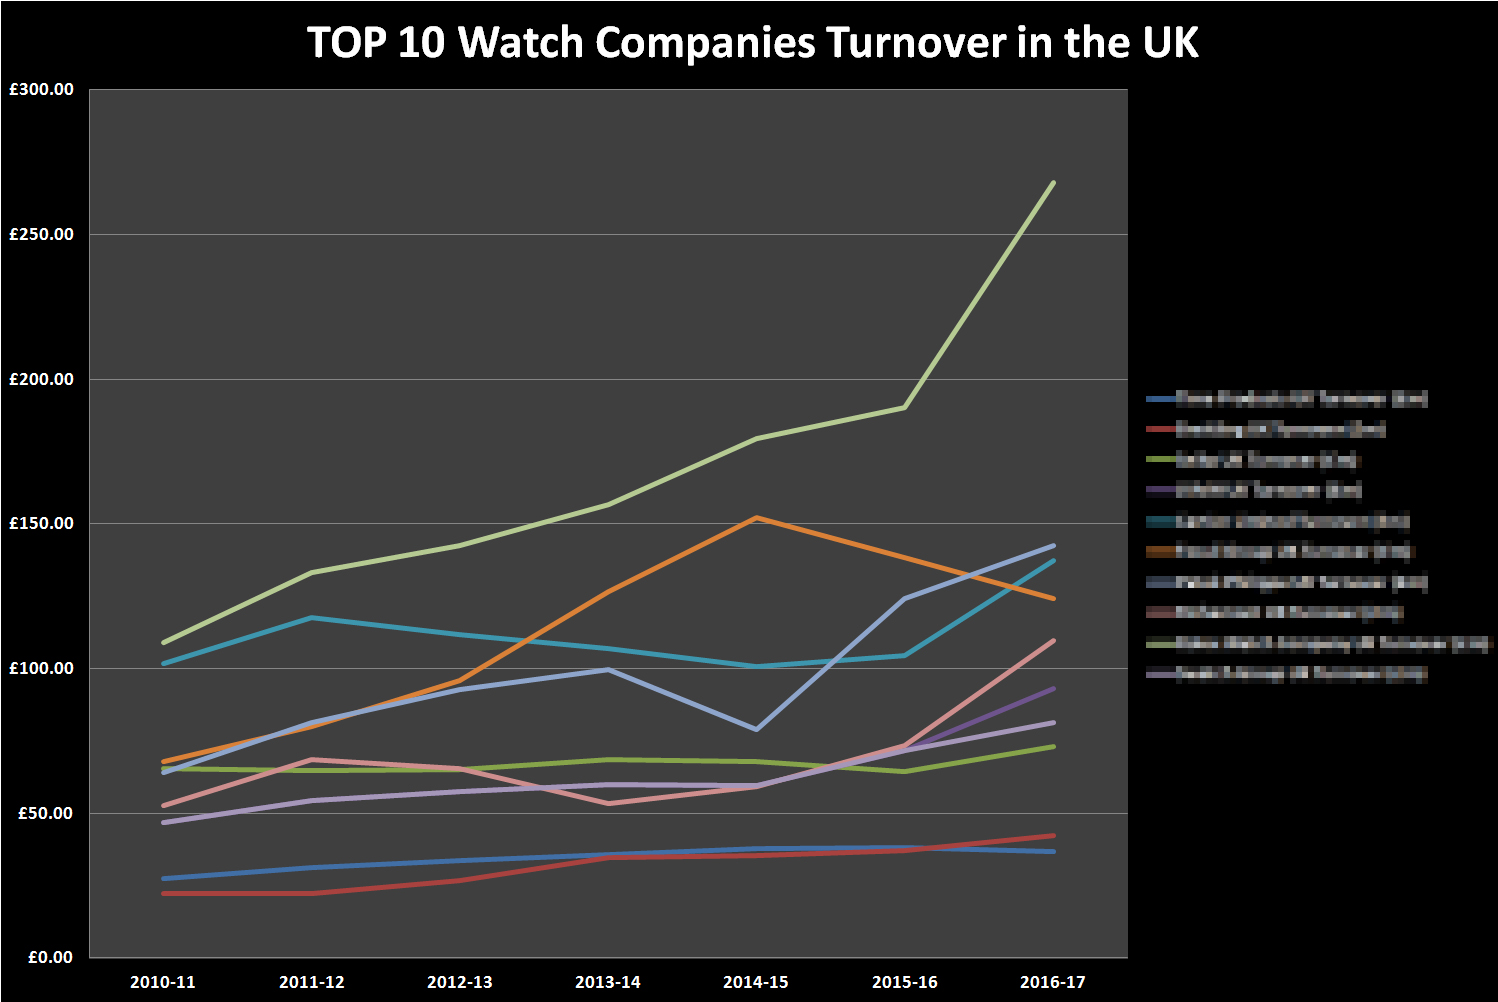 Top 10 UK Watch Businesses by Turnover 2010-2017 pixelated